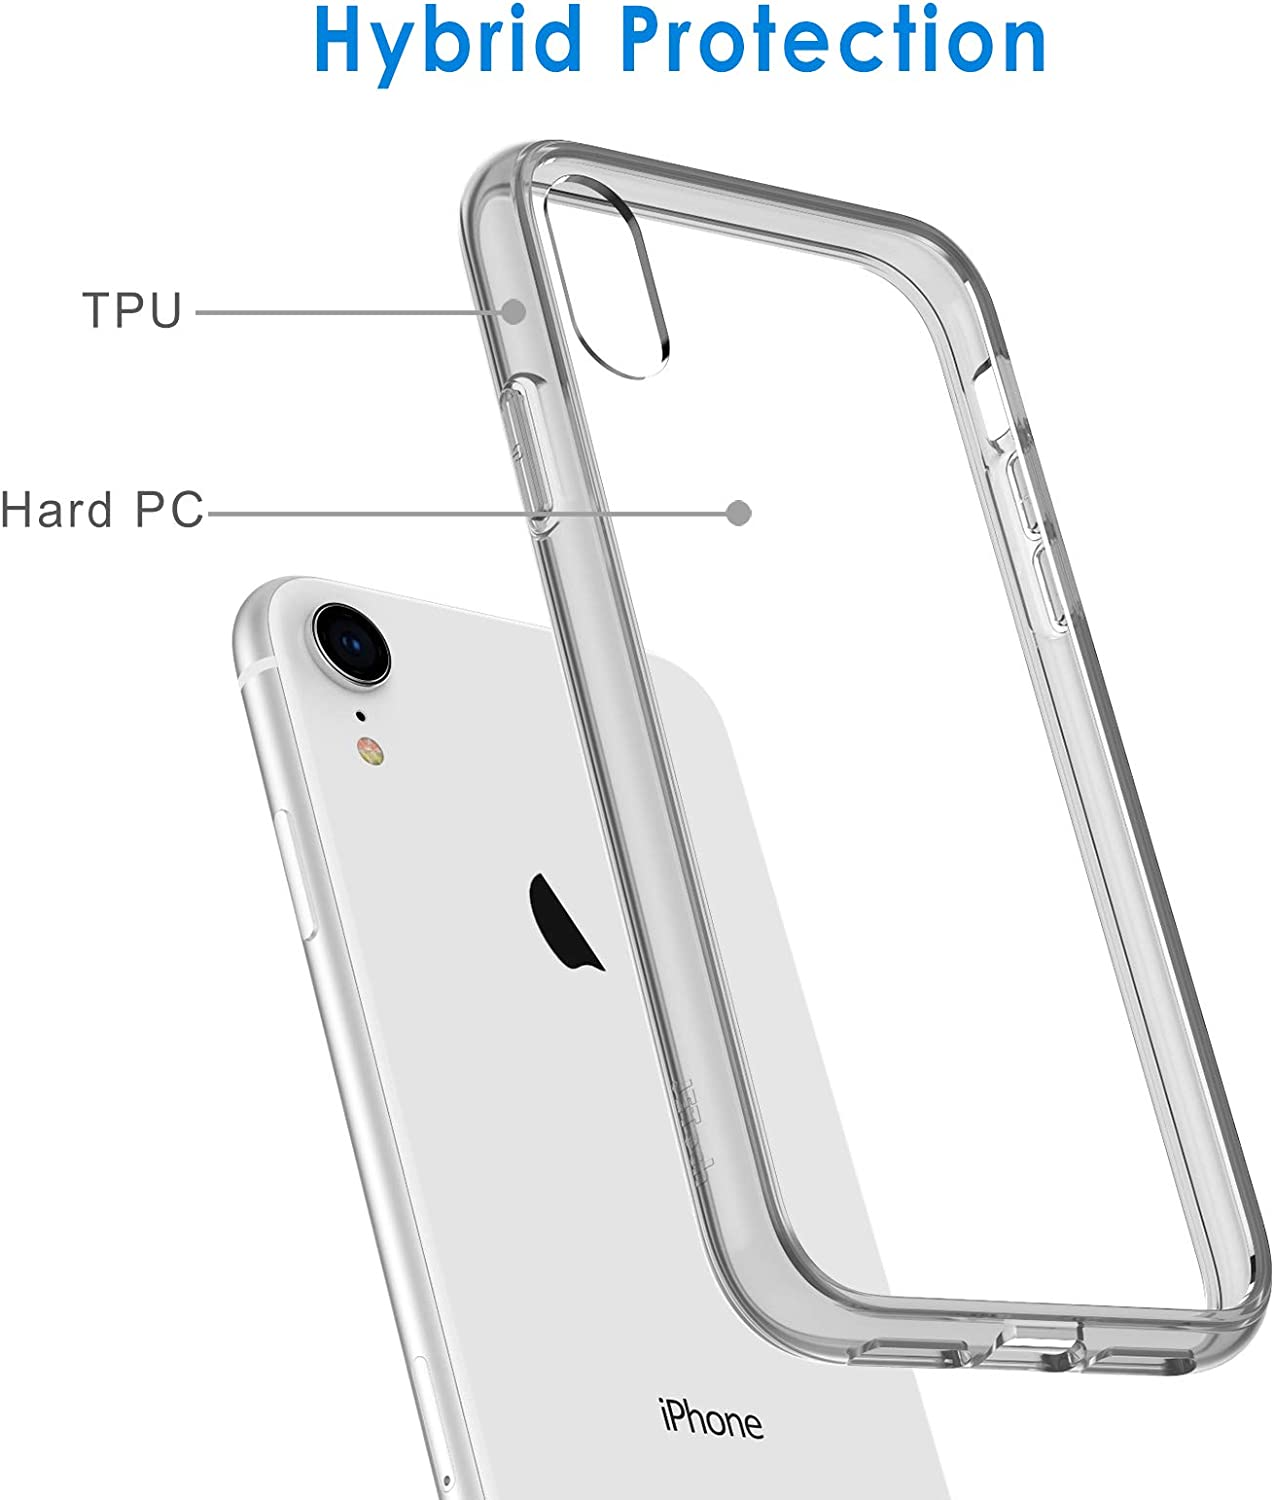 JETech Case for iPhone XR 6.1-Inch, Shock-Absorption Bumper Cover, Grey